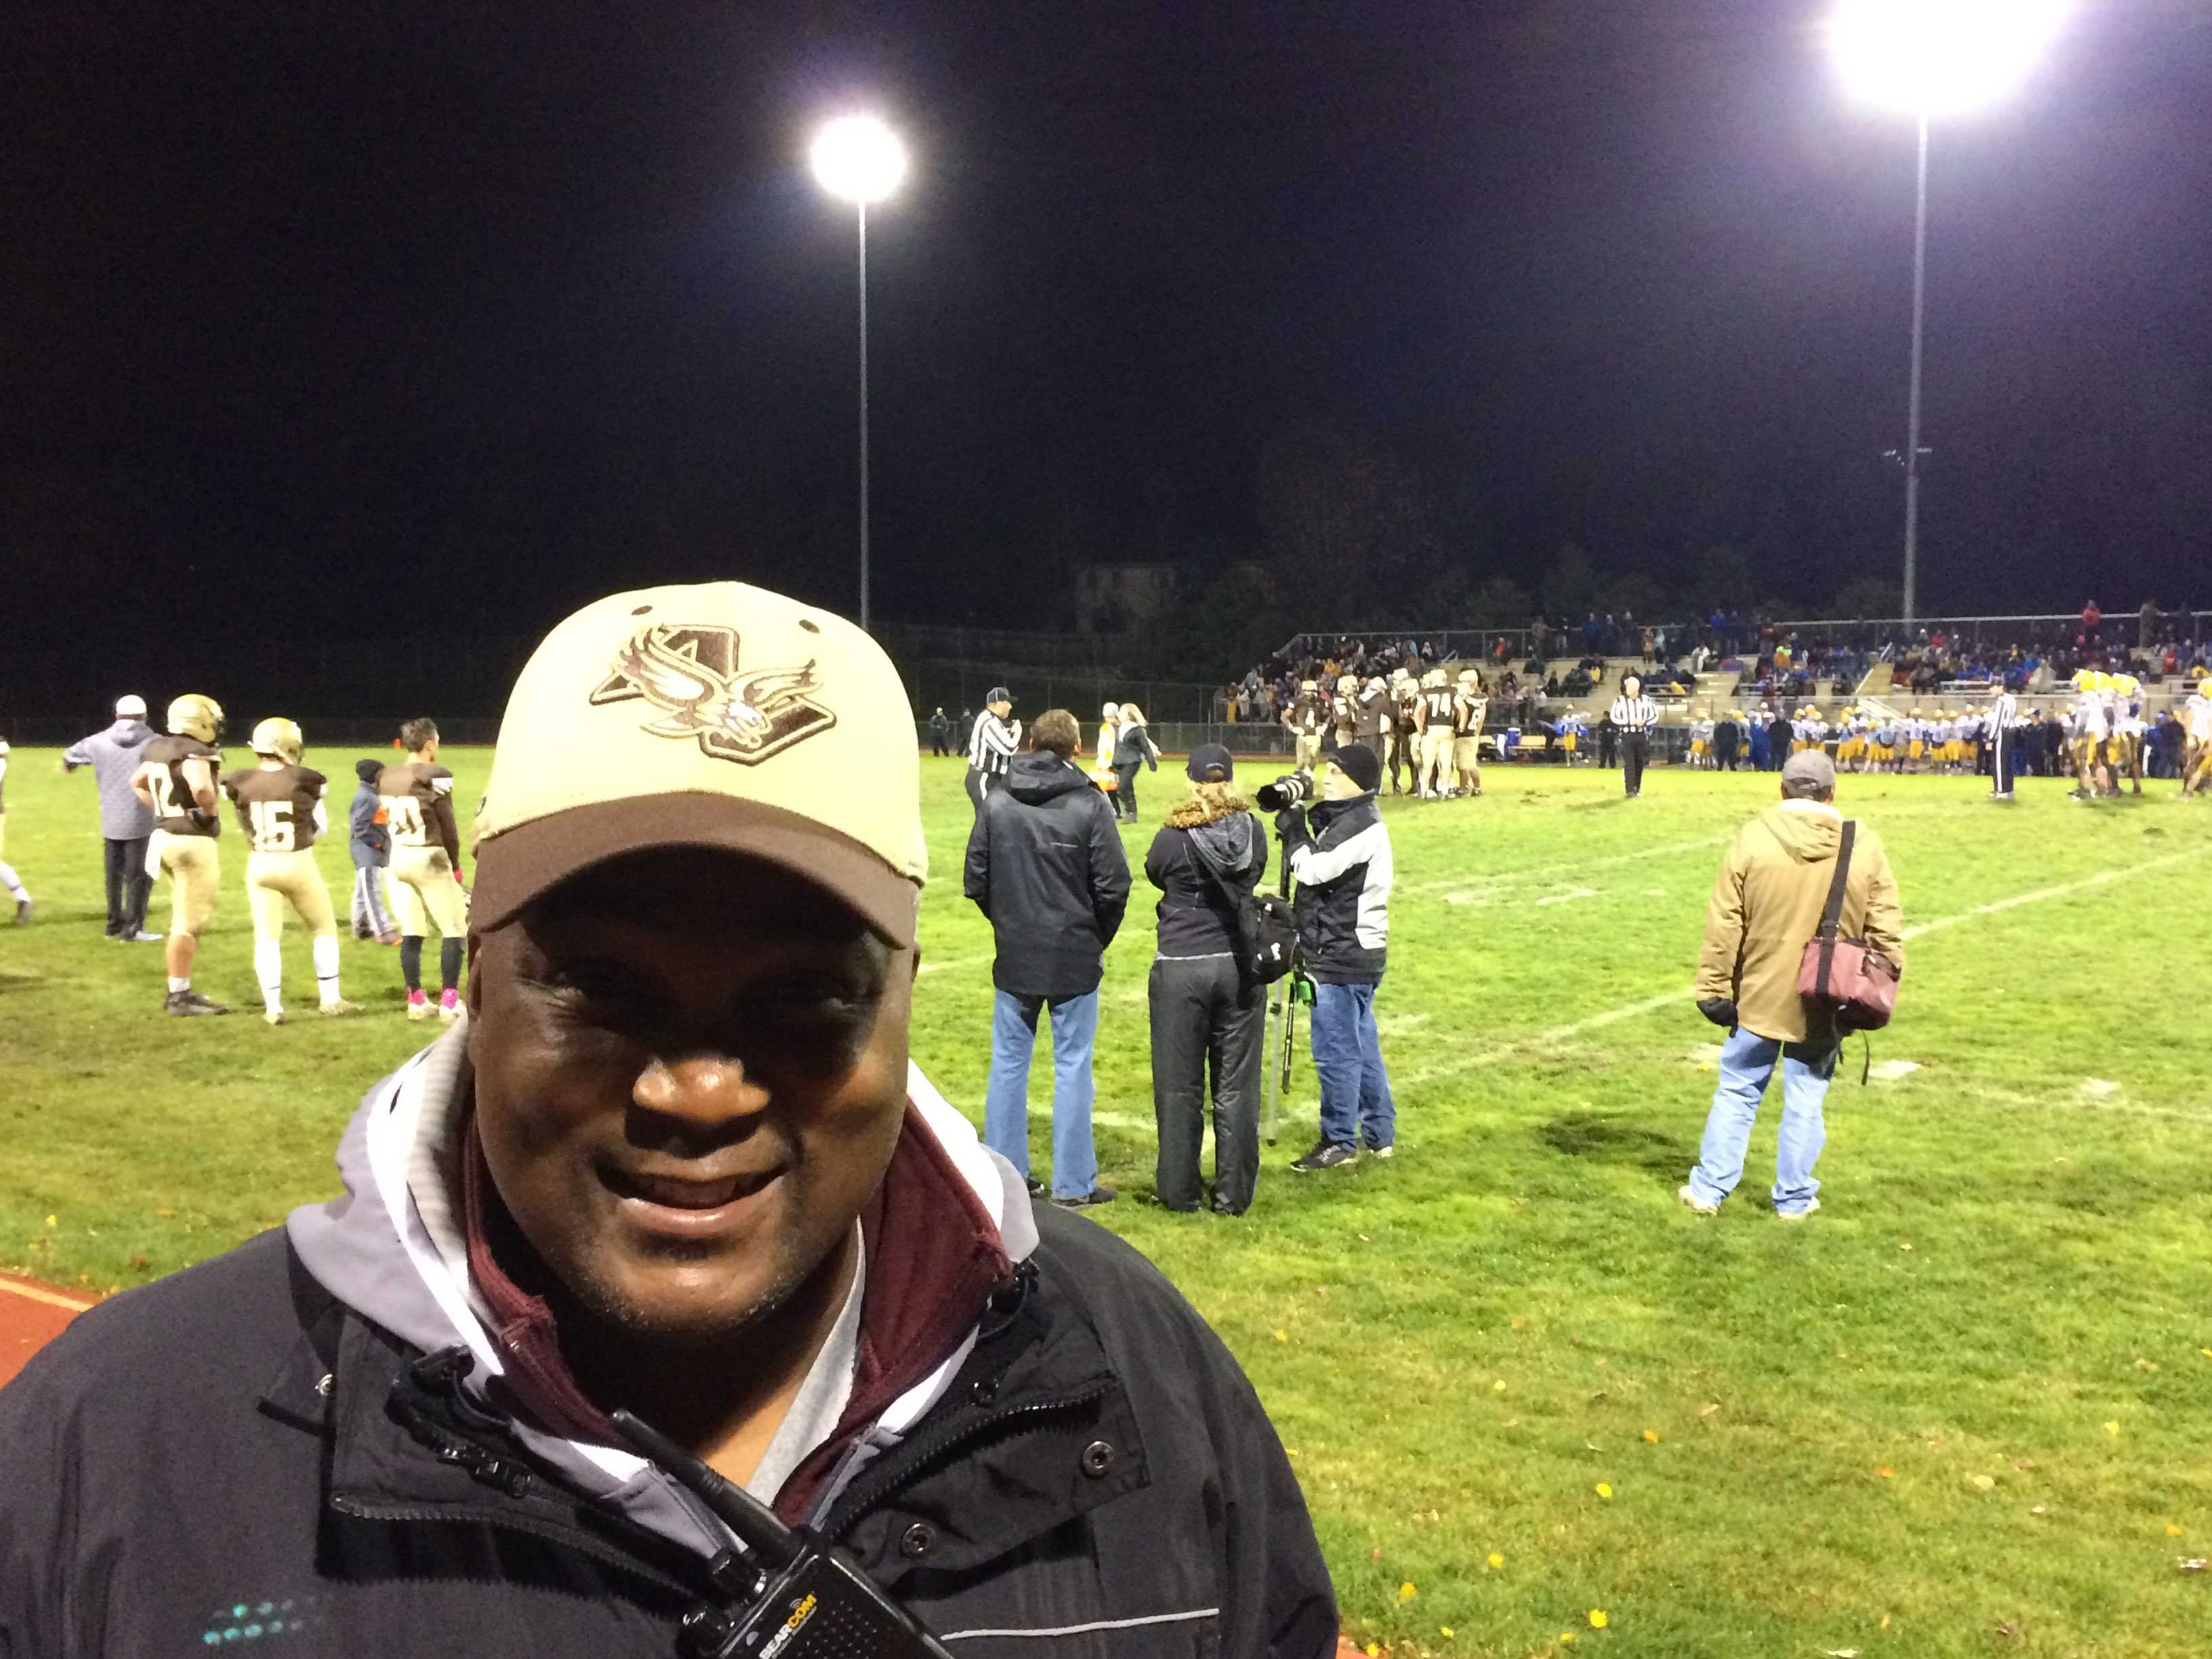 Mr. Jones patrols the sidelines at the Apple Valley-Hastings game.